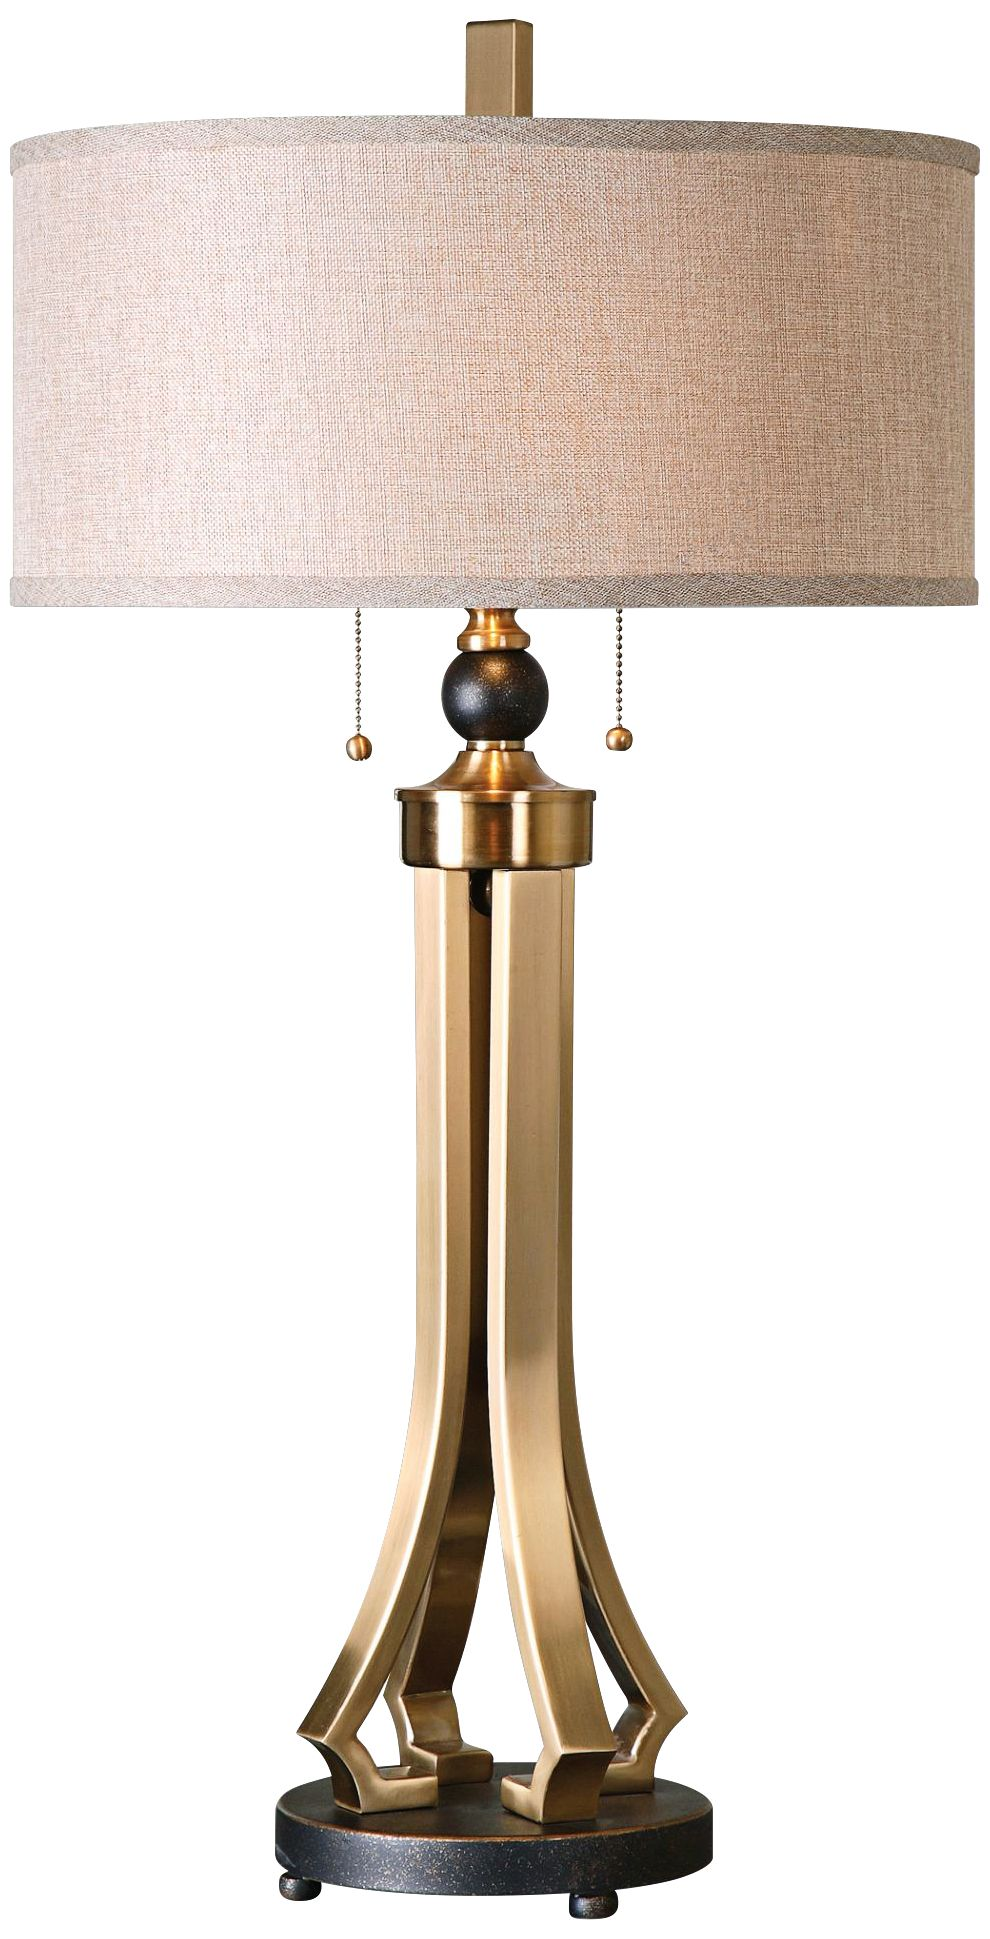 uttermost selvino brushed brass column table lamp